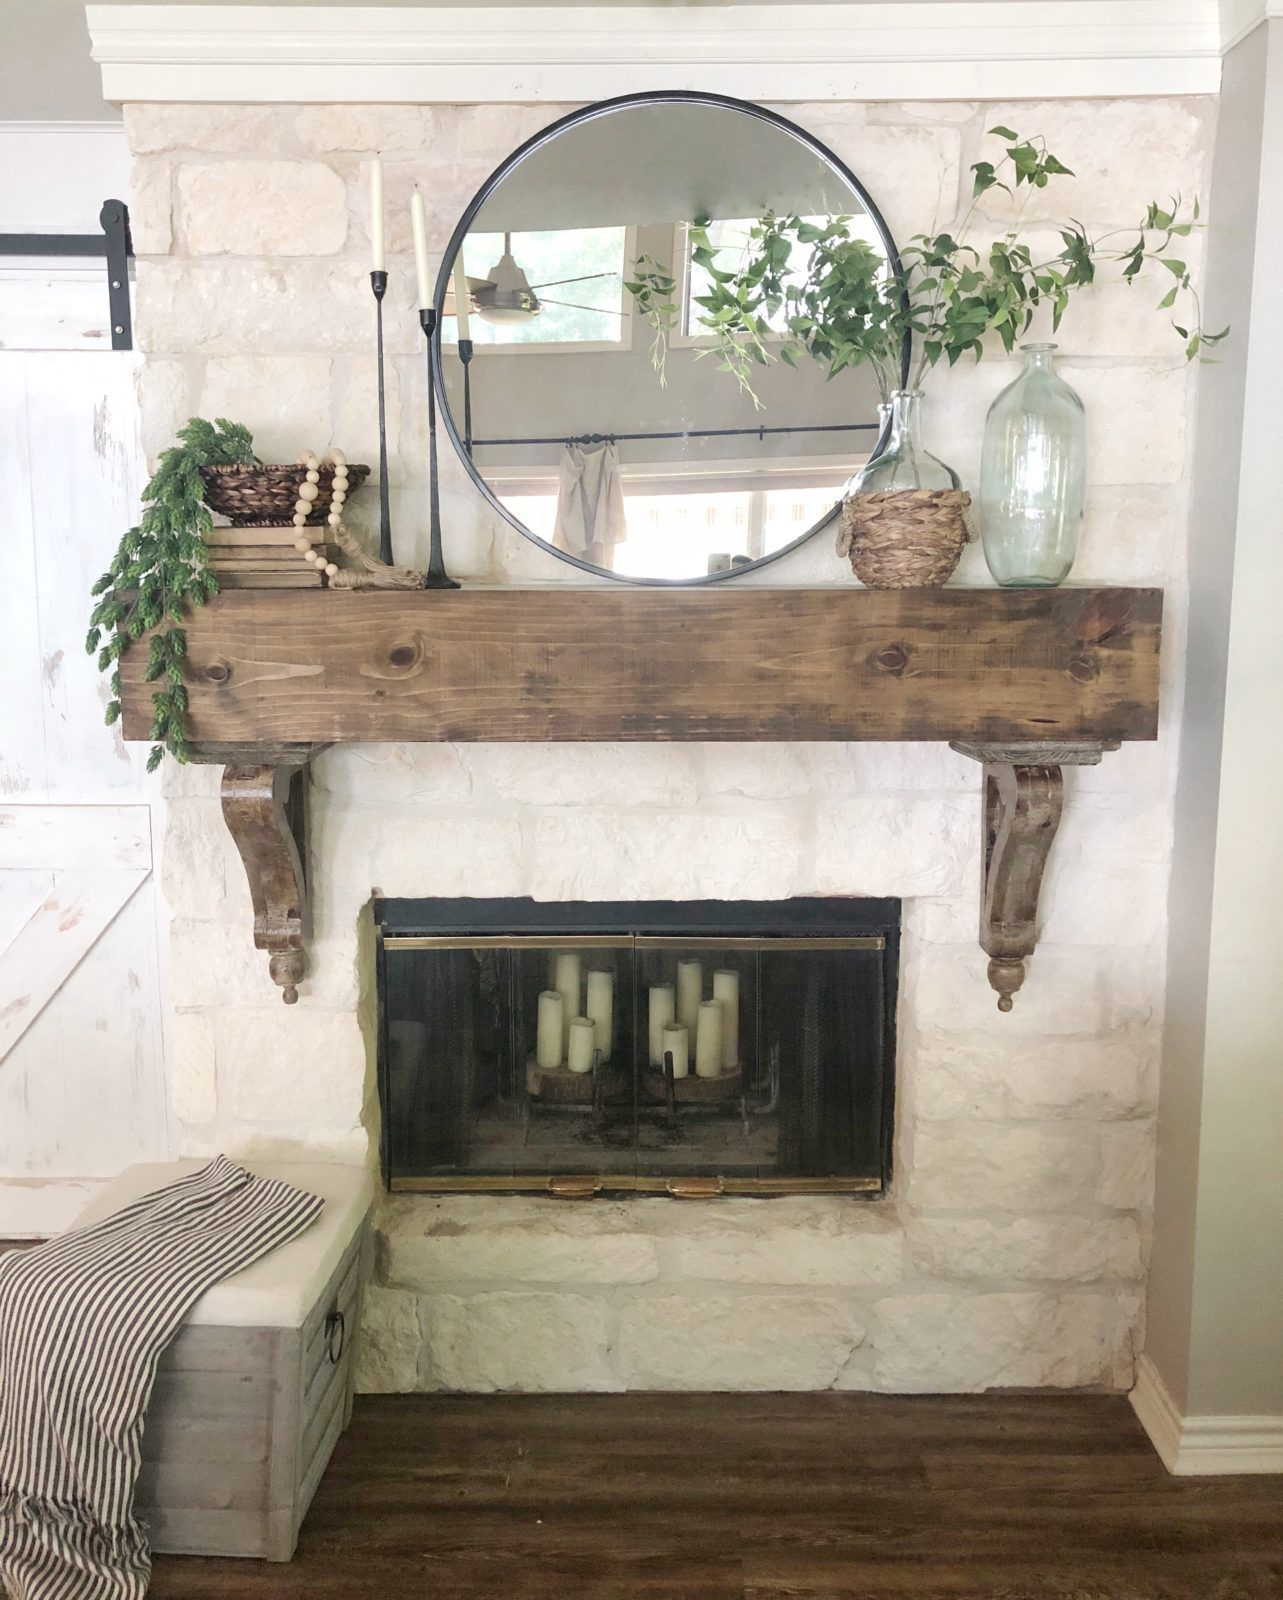 Home Decor Trends For 2020 Hip Humble Style Fireplace Mantle Decor Trending Decor Home Decor Trends